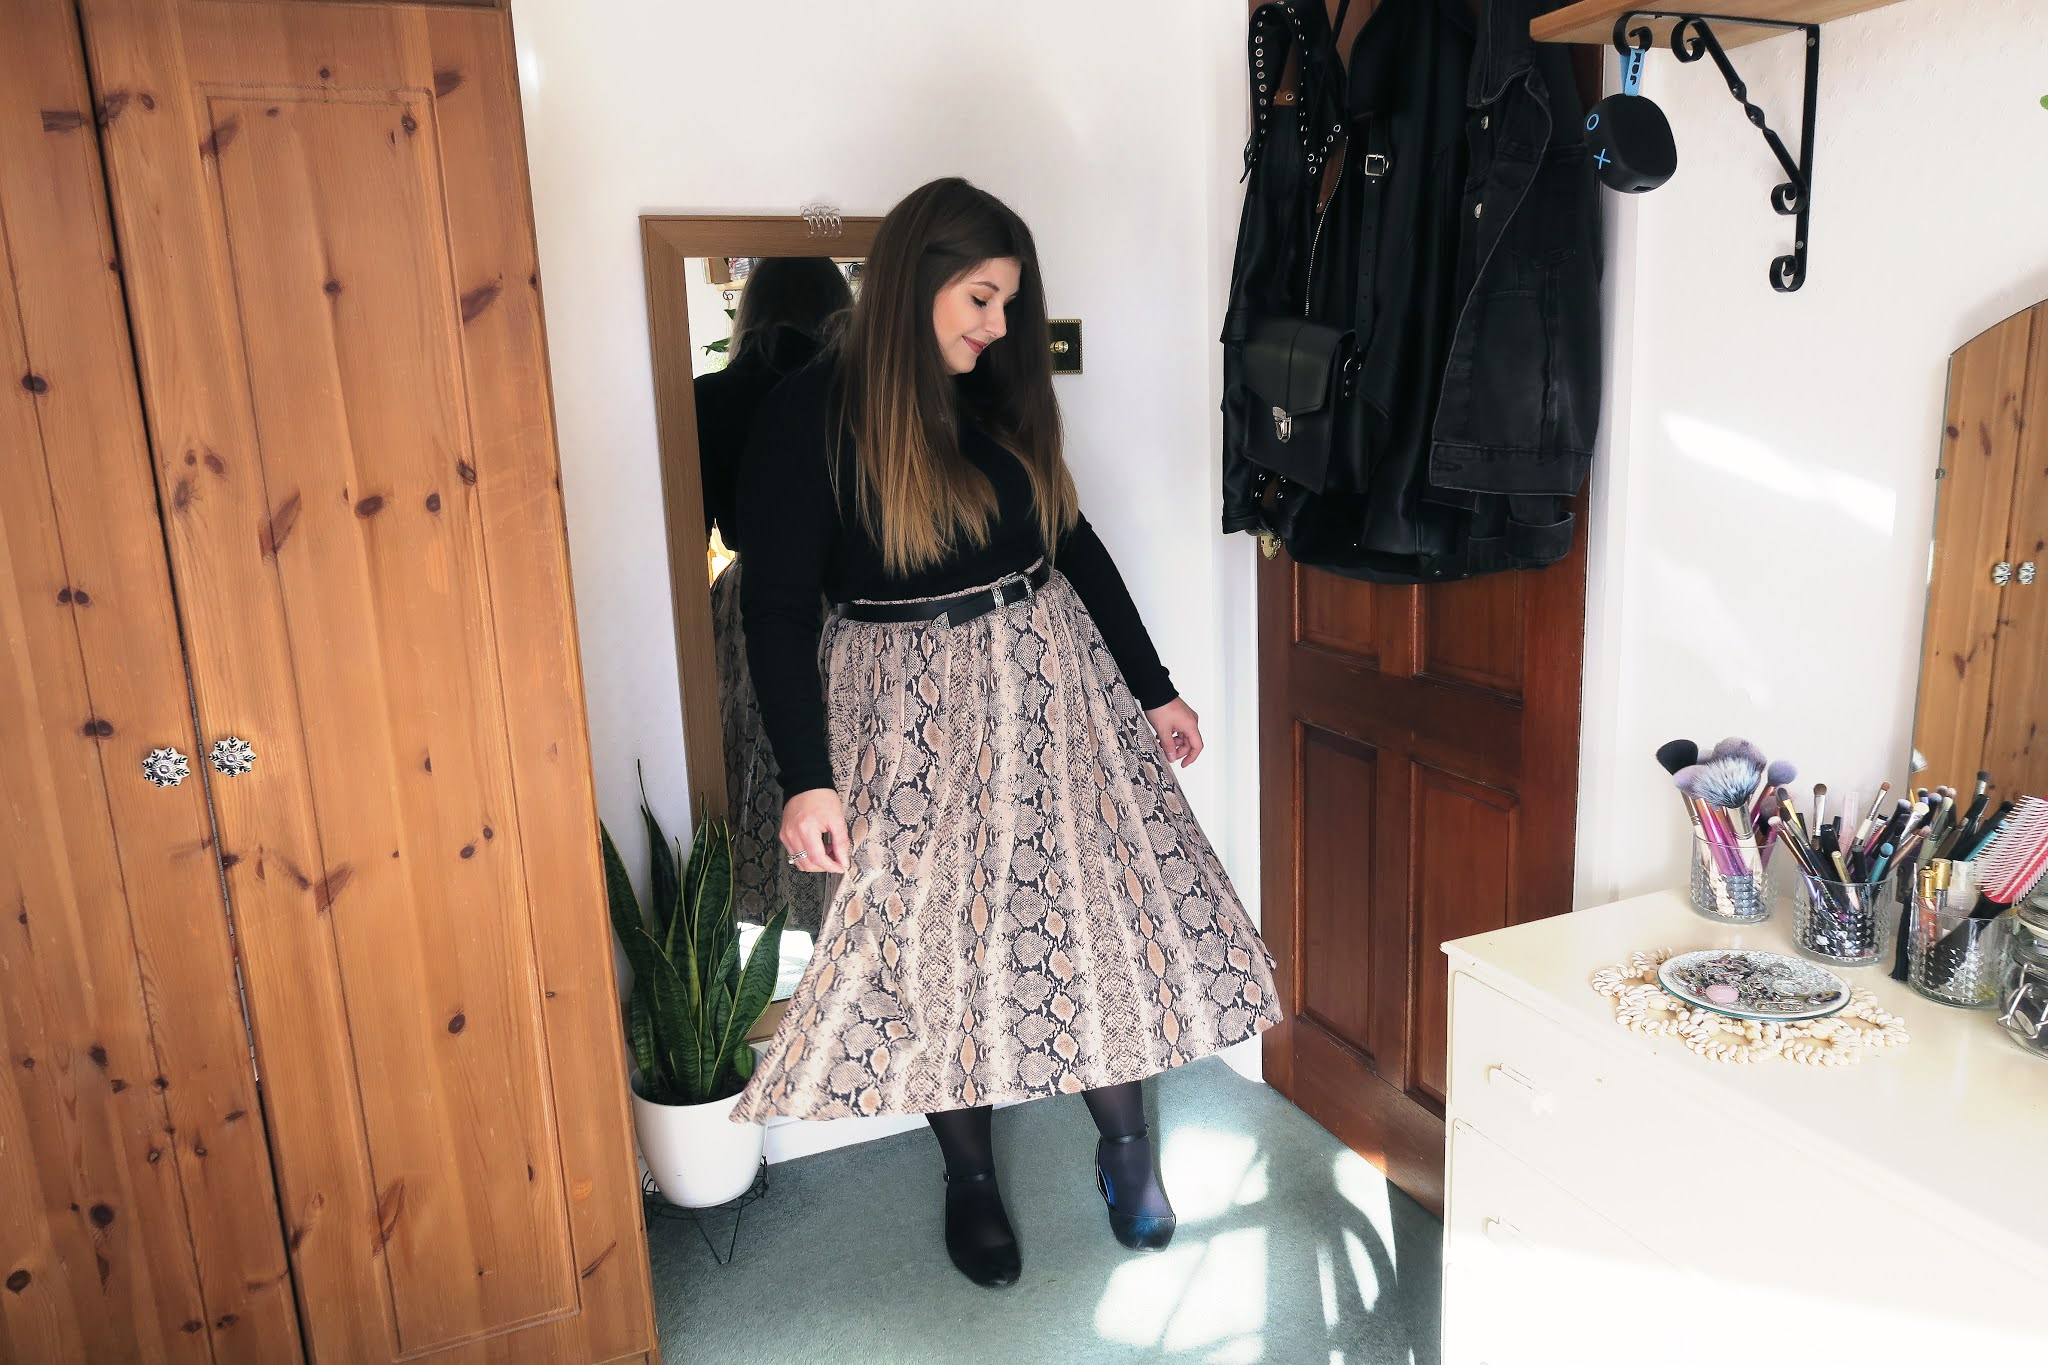 Grace is wearing a black roll neck top tucked in to a brown snakeskin print midi skirt.